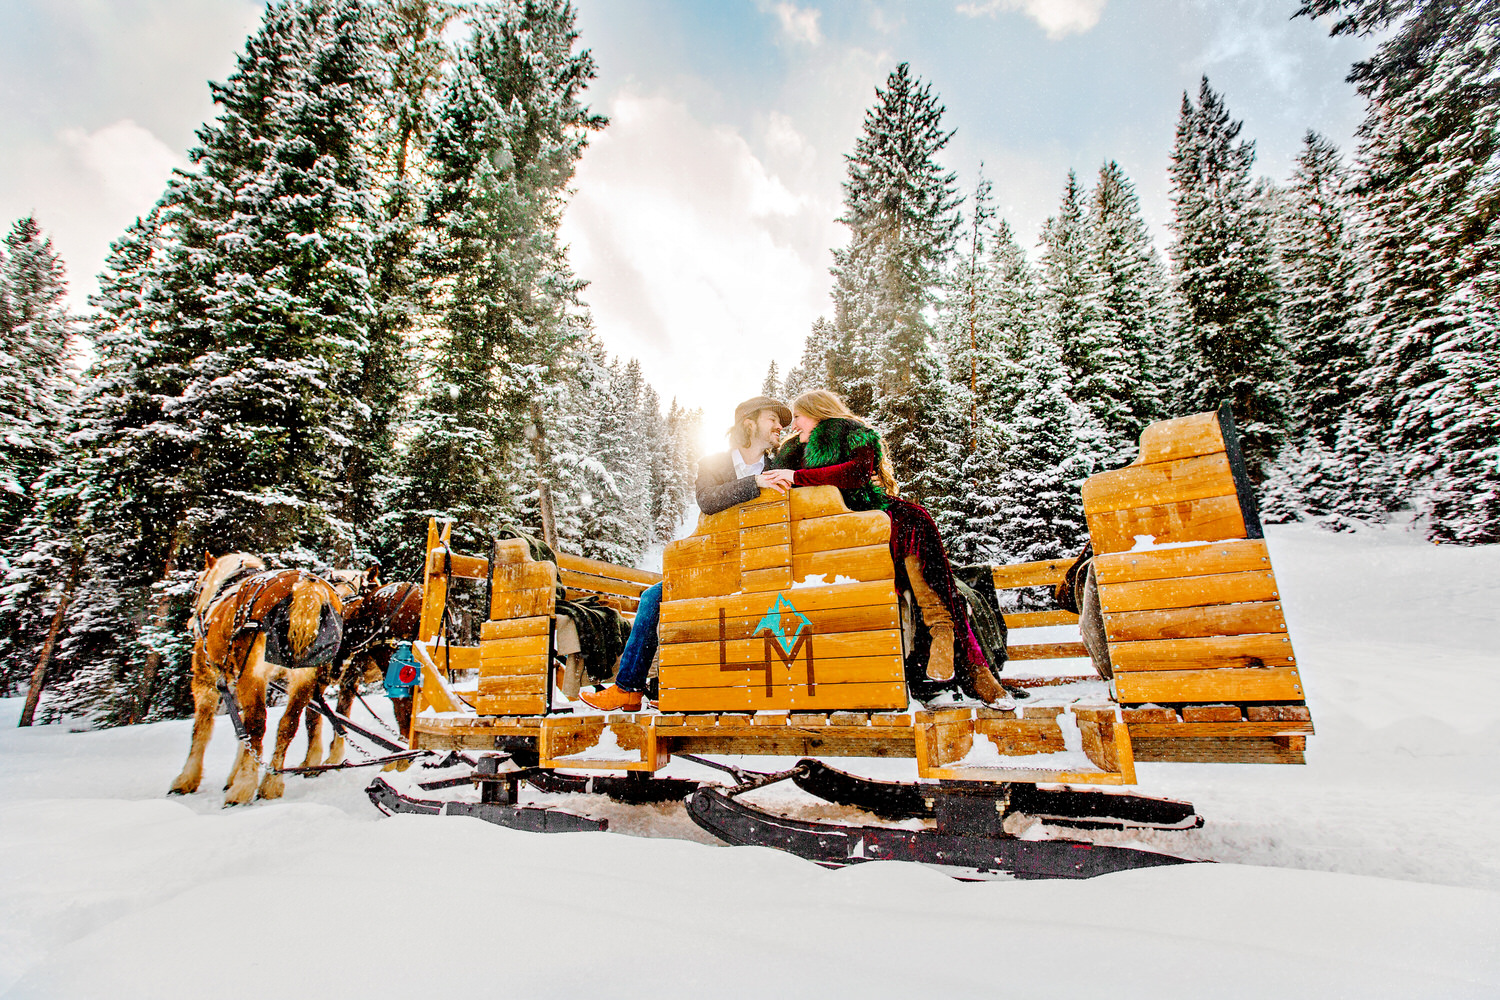 How can you describe Bozeman Montana without a snow covered sleigh ride? This wedding was every production a photographer hopes for at some point in their career.